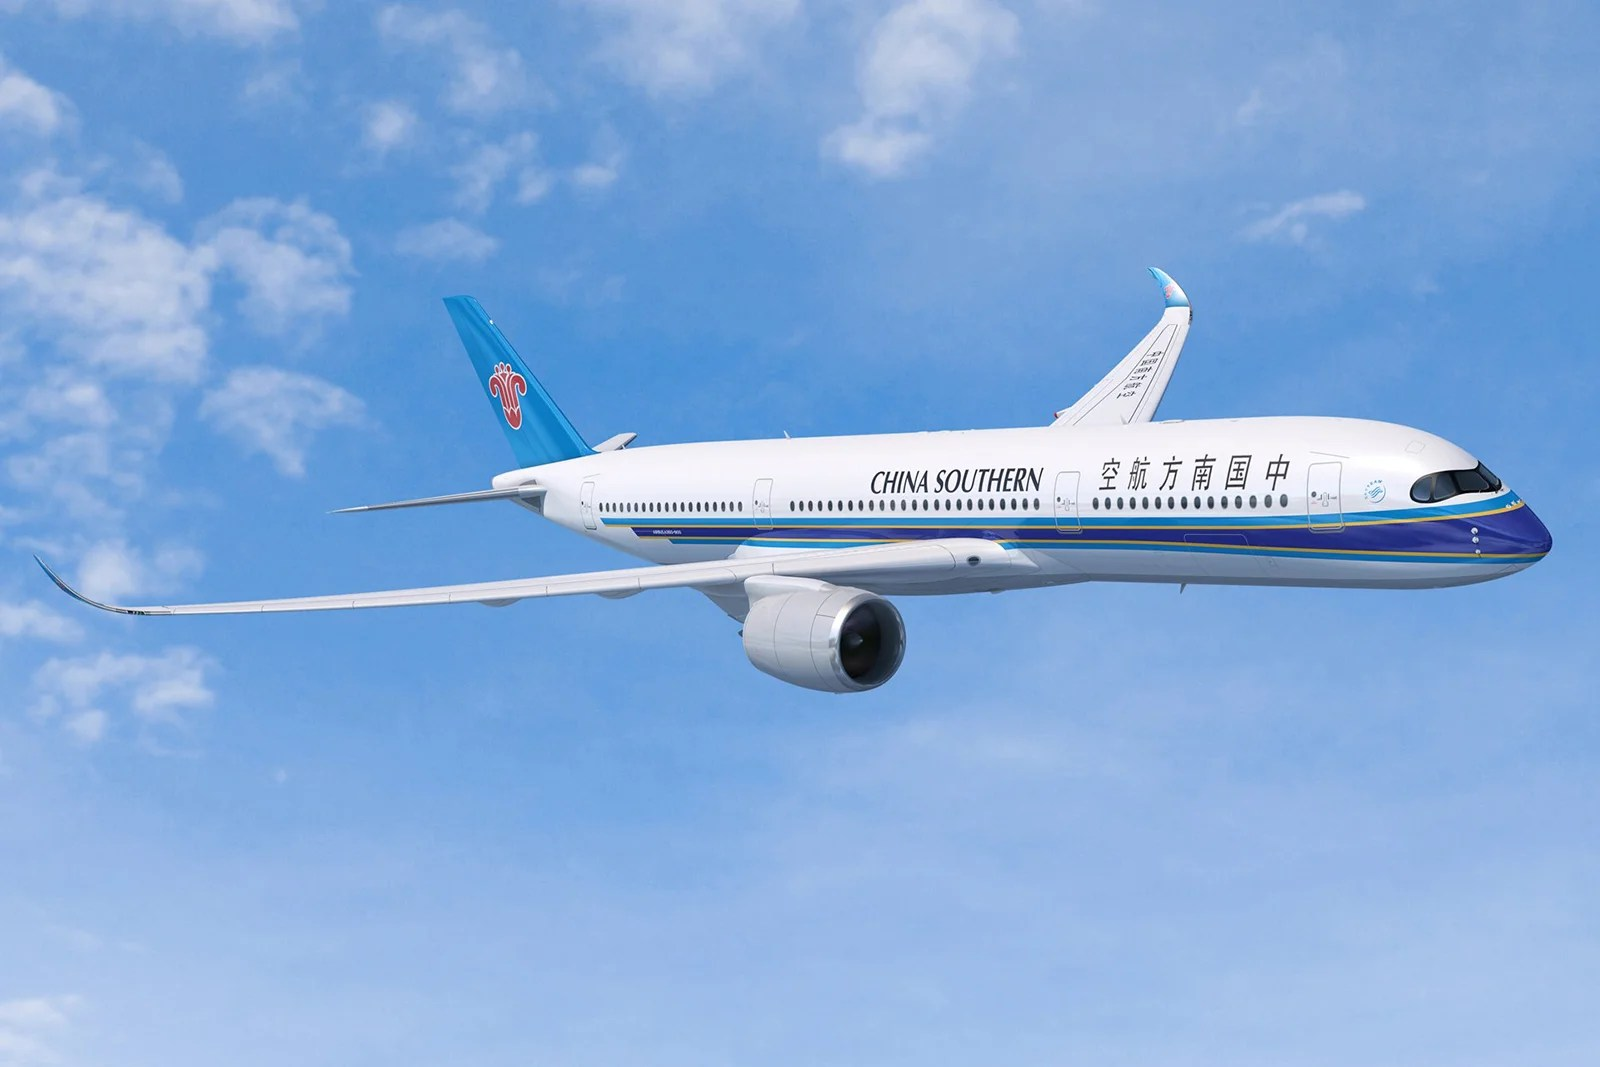 A Look Inside China Southern's First Airbus A350-900